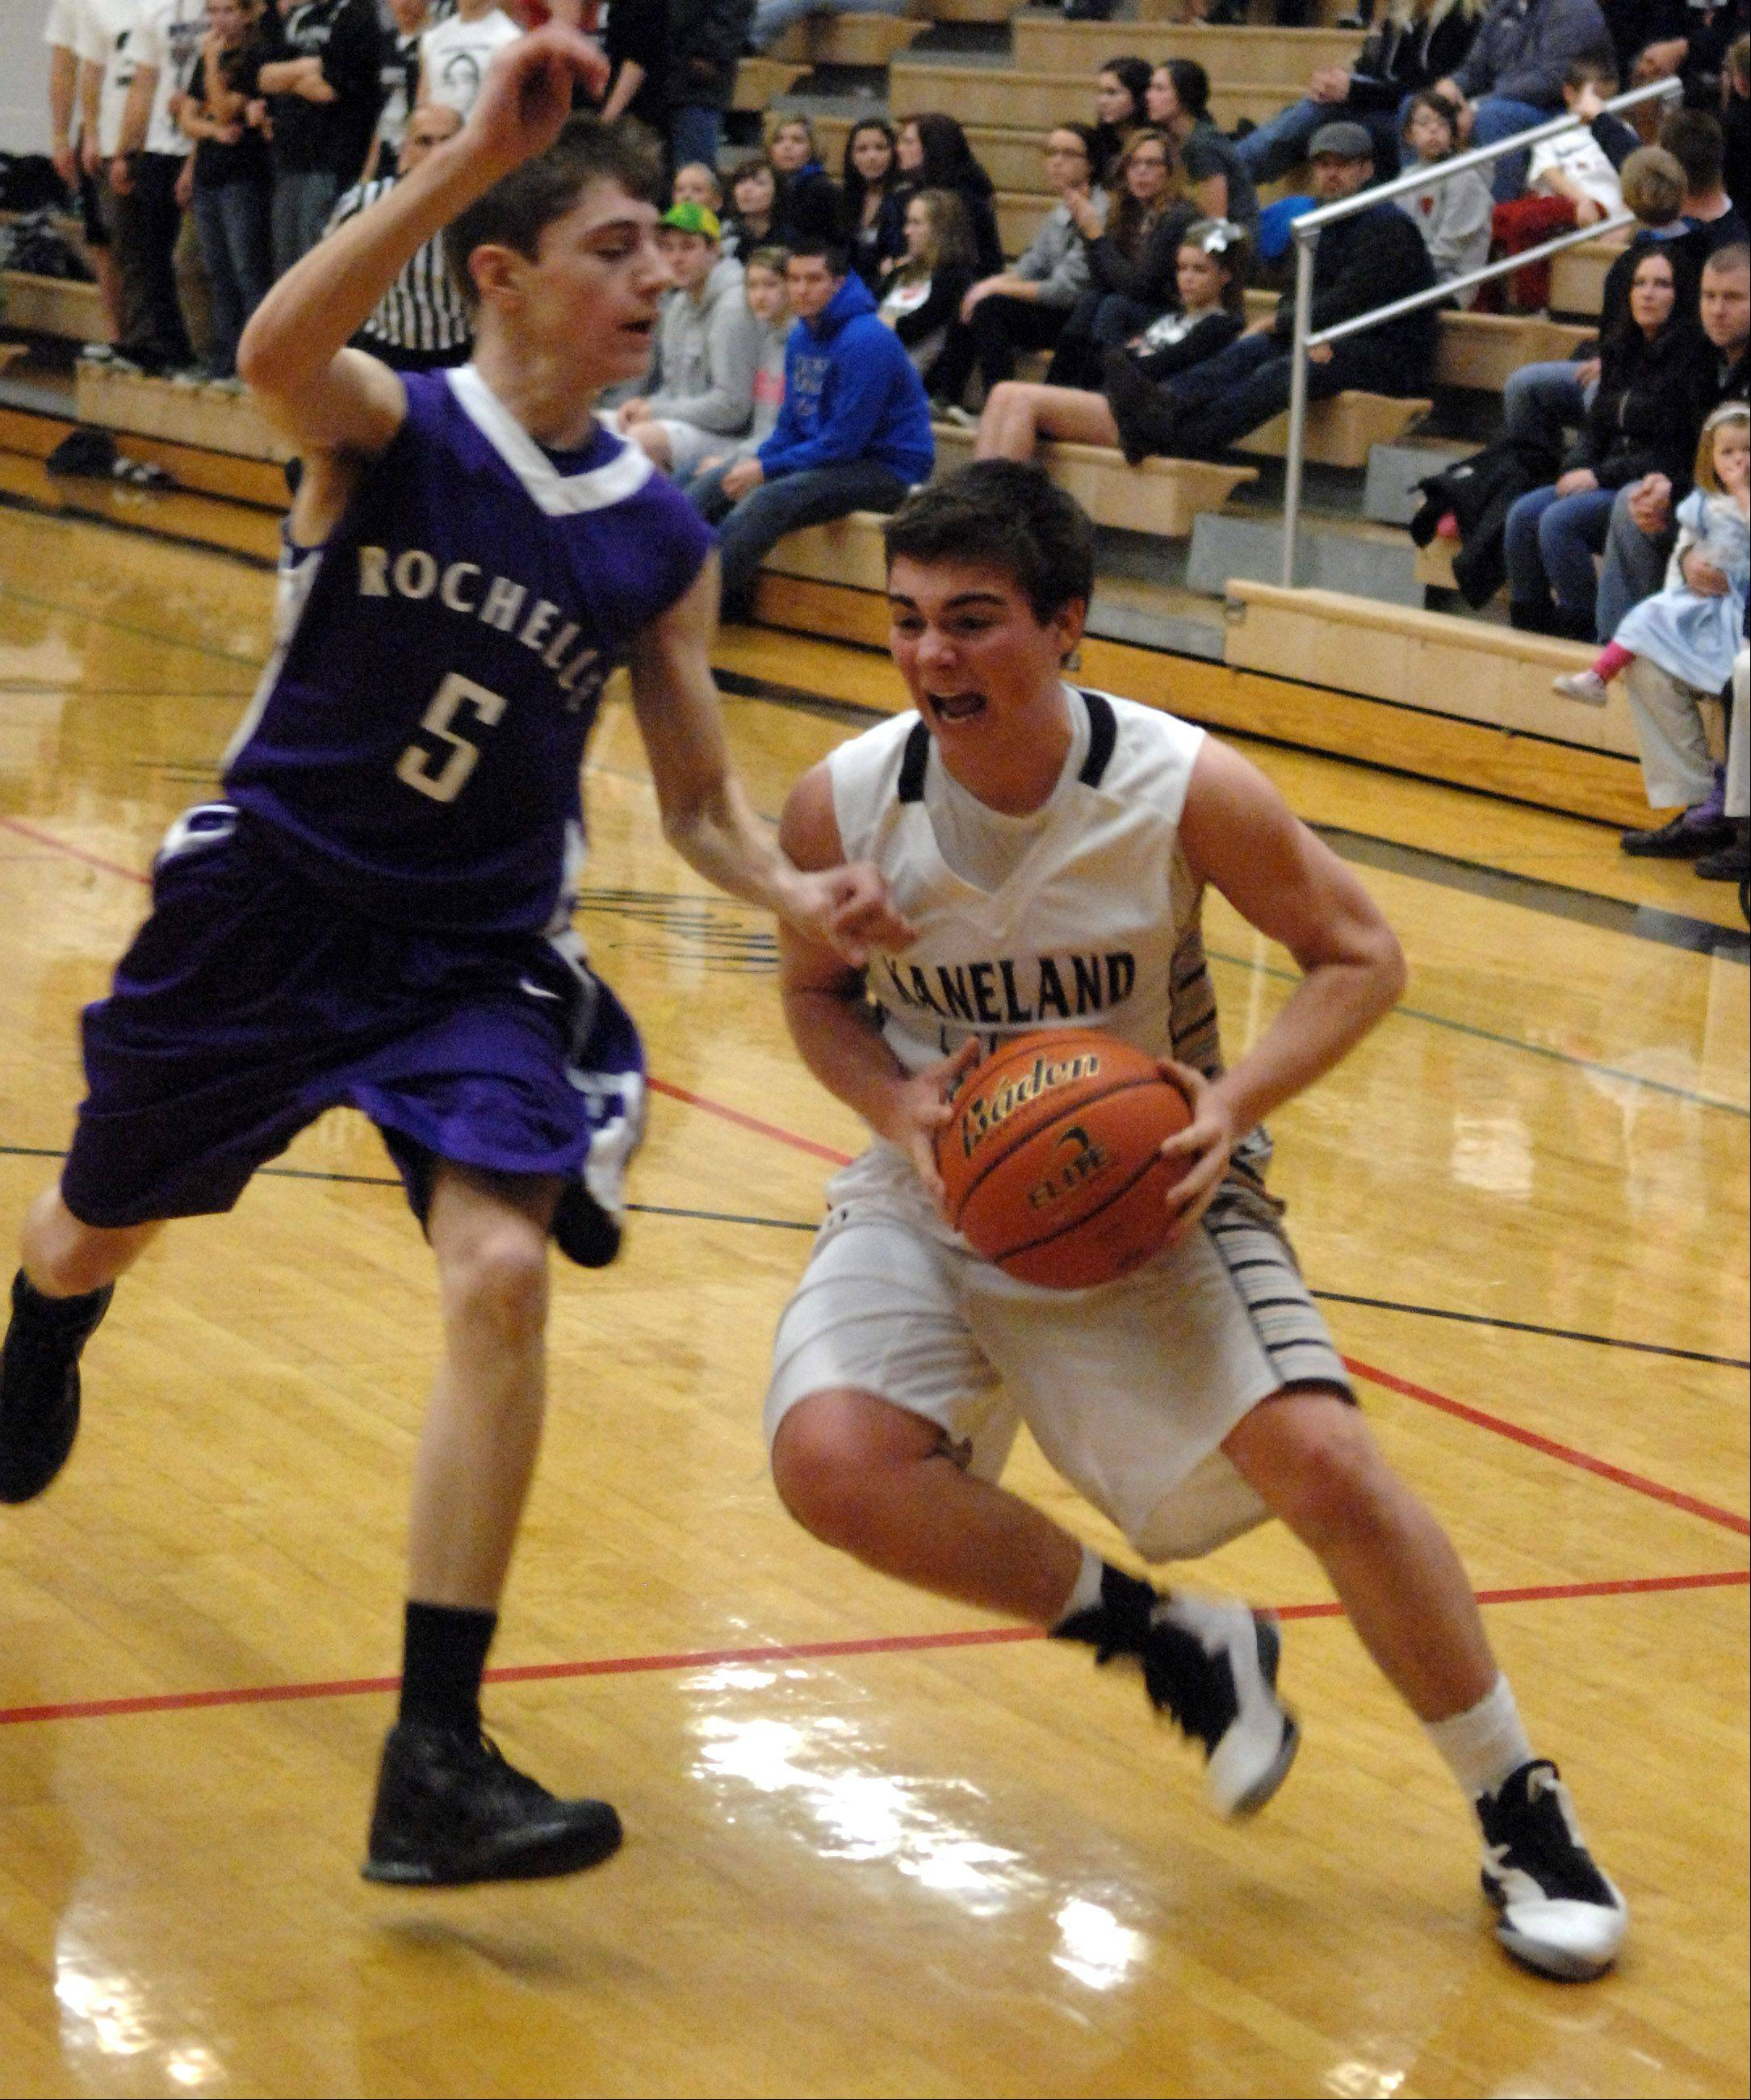 Kaneland's Connor Fedderly tries to drive the baseline as he is defendedy by Rochelle's Aaron Mehrings during Thursday's game in Maple Park.